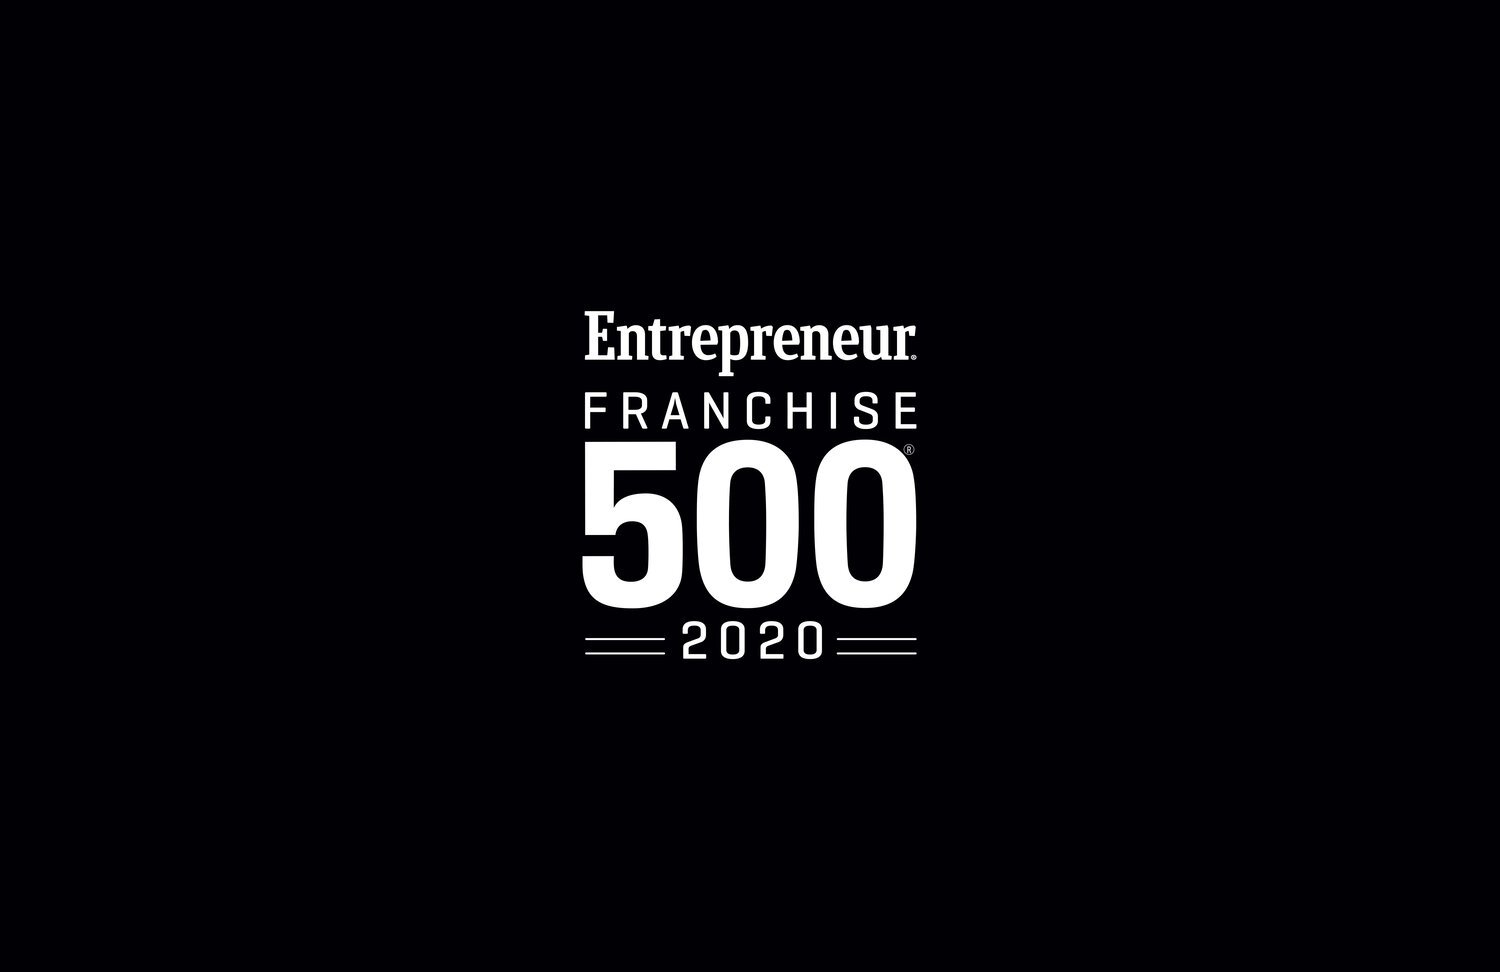 Entrepreneur Media<span> has released its 2020 Franchise 500 Ranking list and CycleBar is up 20 places from last year</span>